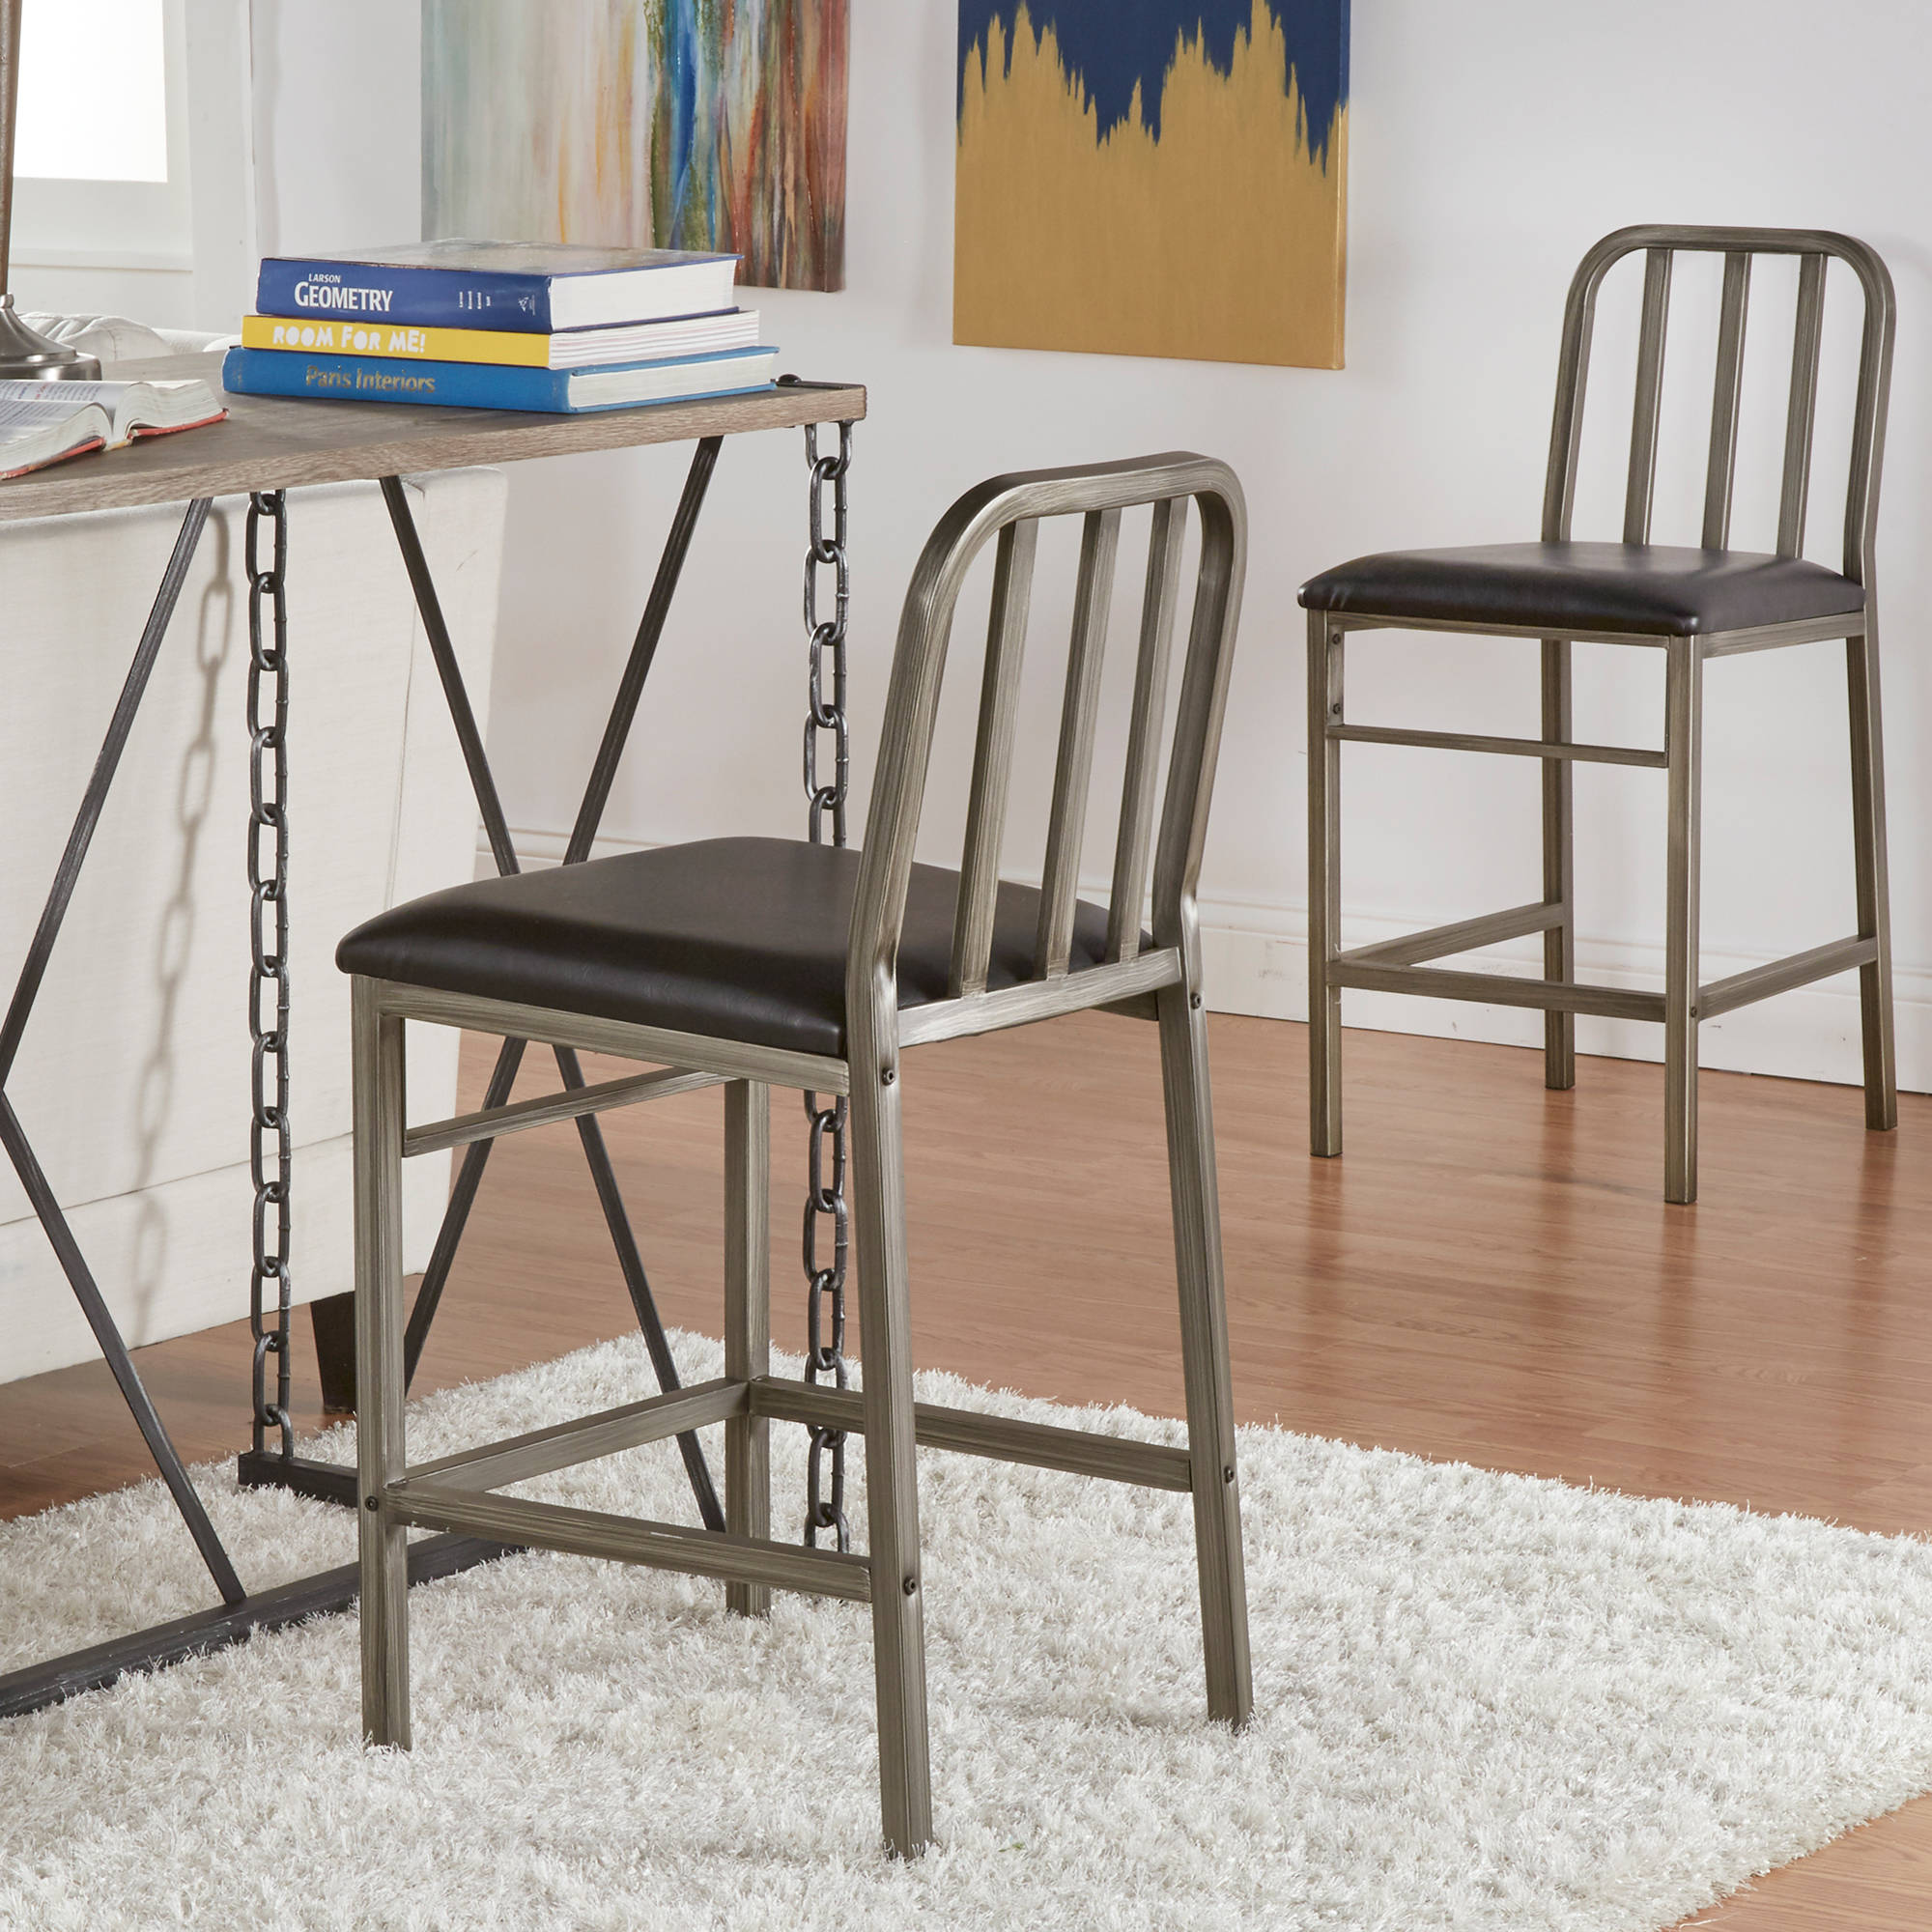 Chelsea Lane Powder Coat Counter Height Chair , Set of 2, Black